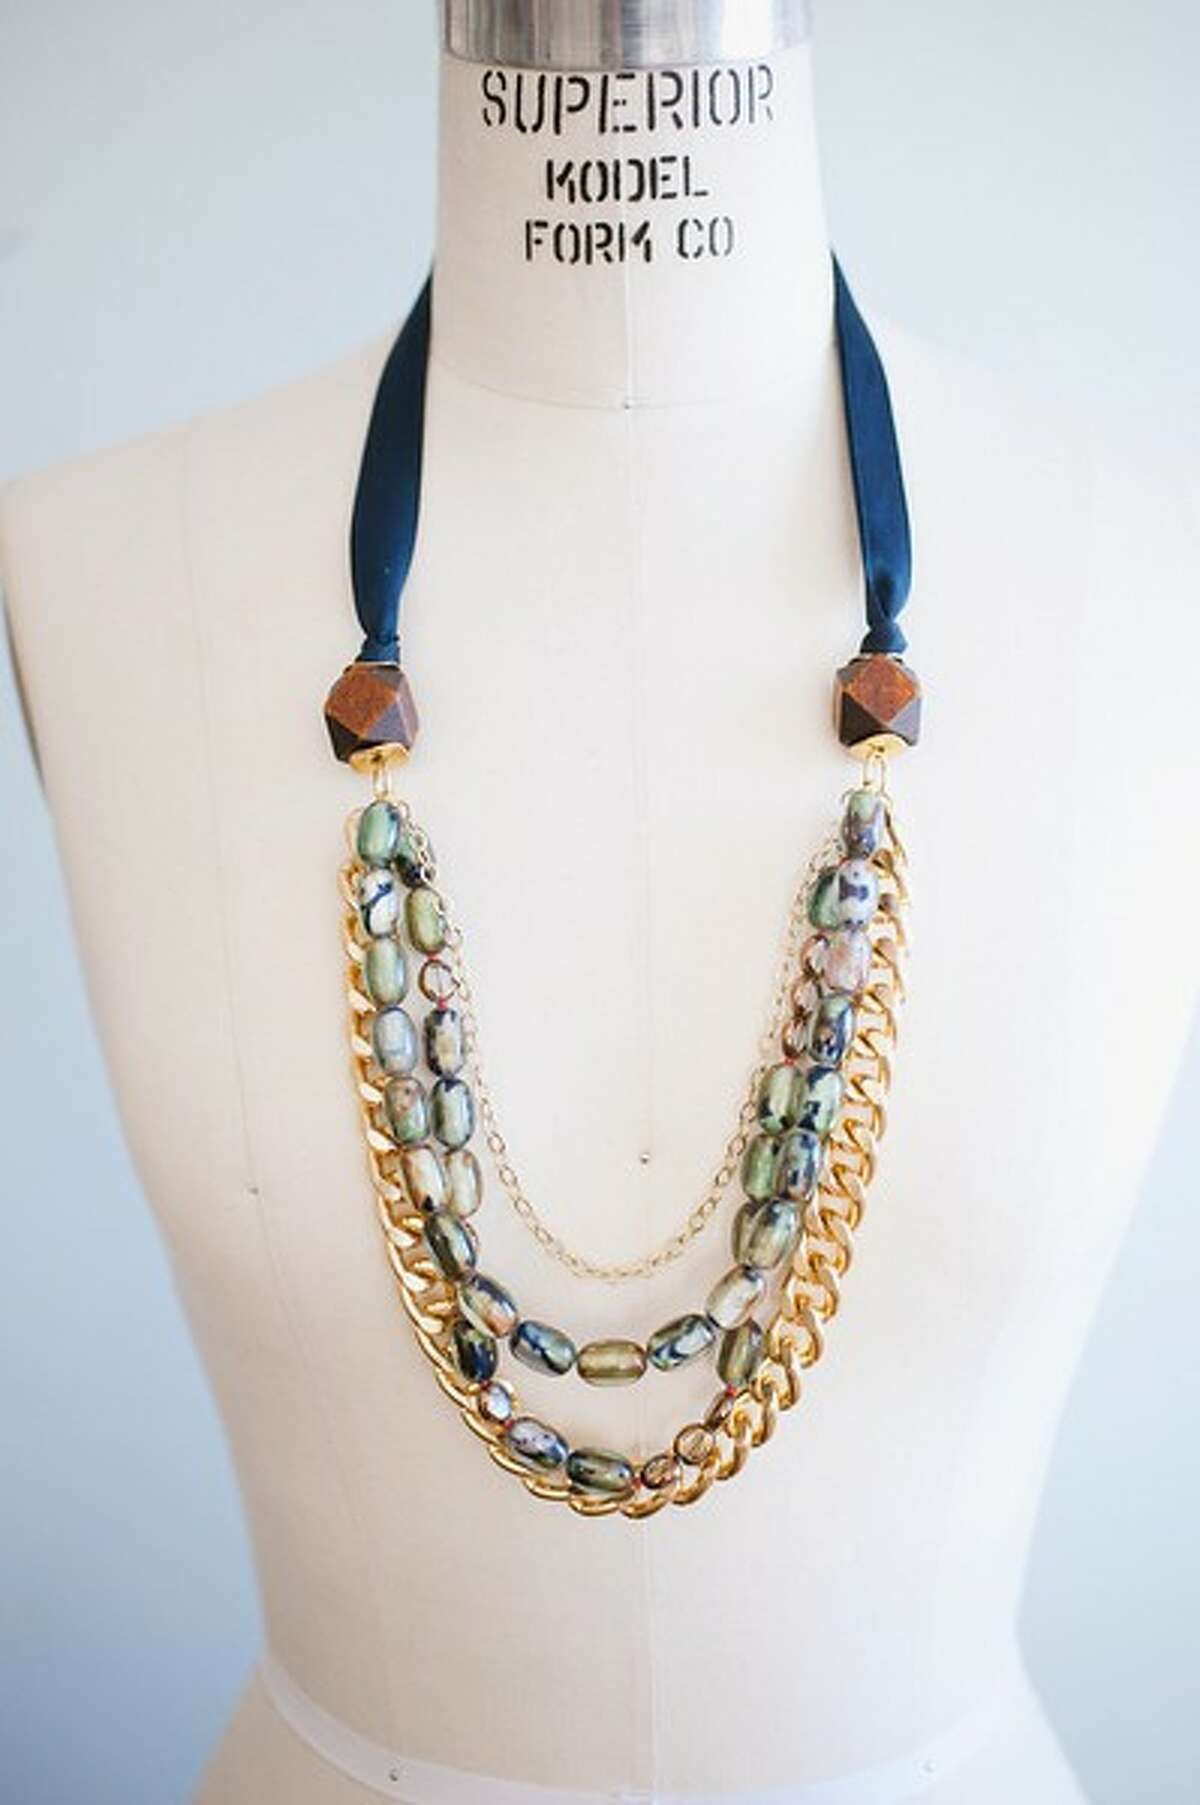 Just by adding a statement necklace, such as this Richmond necklace, some chunky bracelets or a bright-colored belt can turn a drab outfit into a polished look.